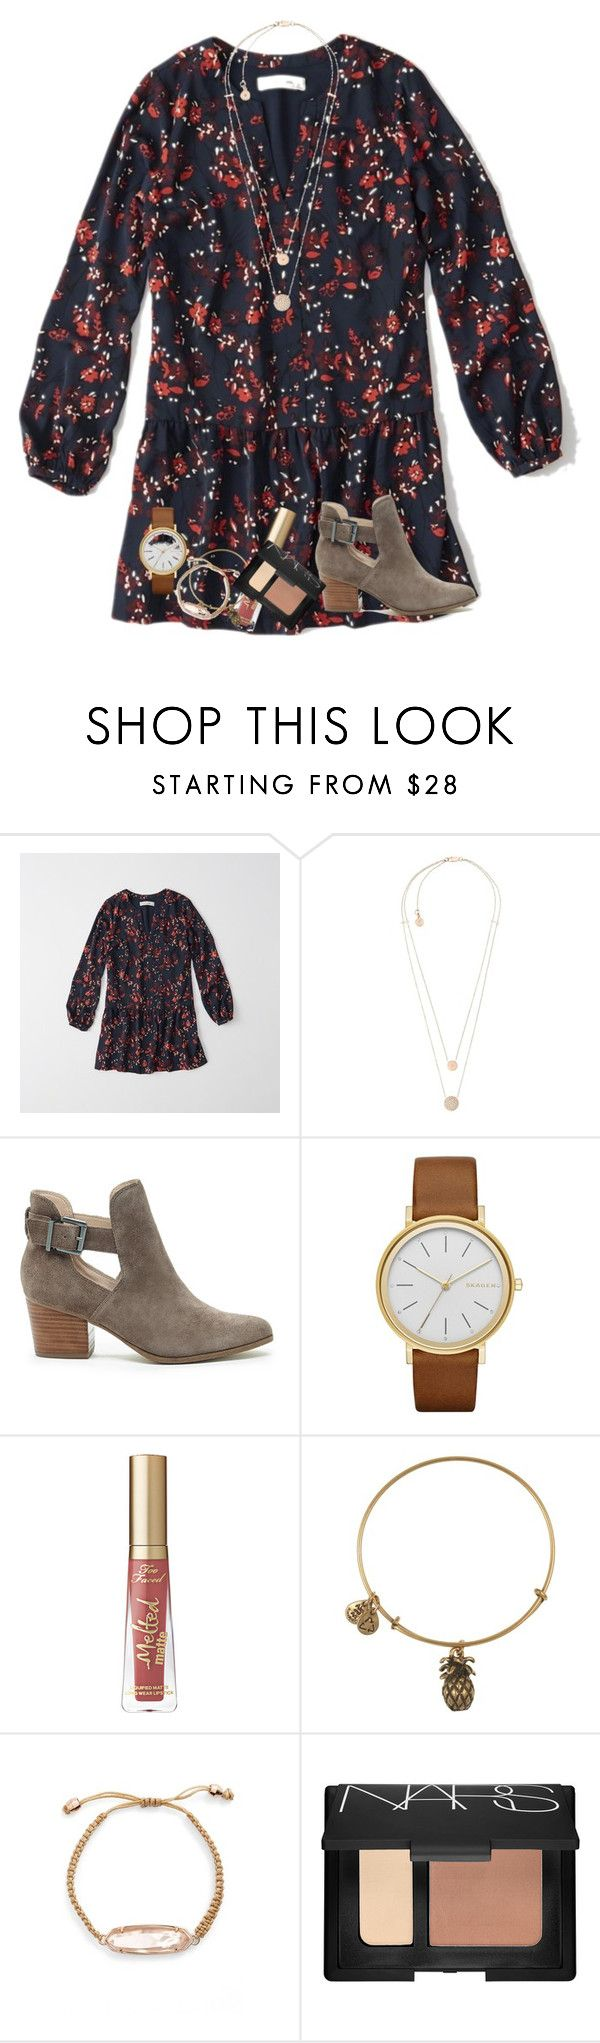 """""""this girl is on fire"""" by kyliegrace ❤ liked on Polyvore featuring beauty, Abercrombie & Fitch, Michael Kors, Sole Society, Skagen, Alex and Ani, Kendra Scott and NARS Cosmetics"""